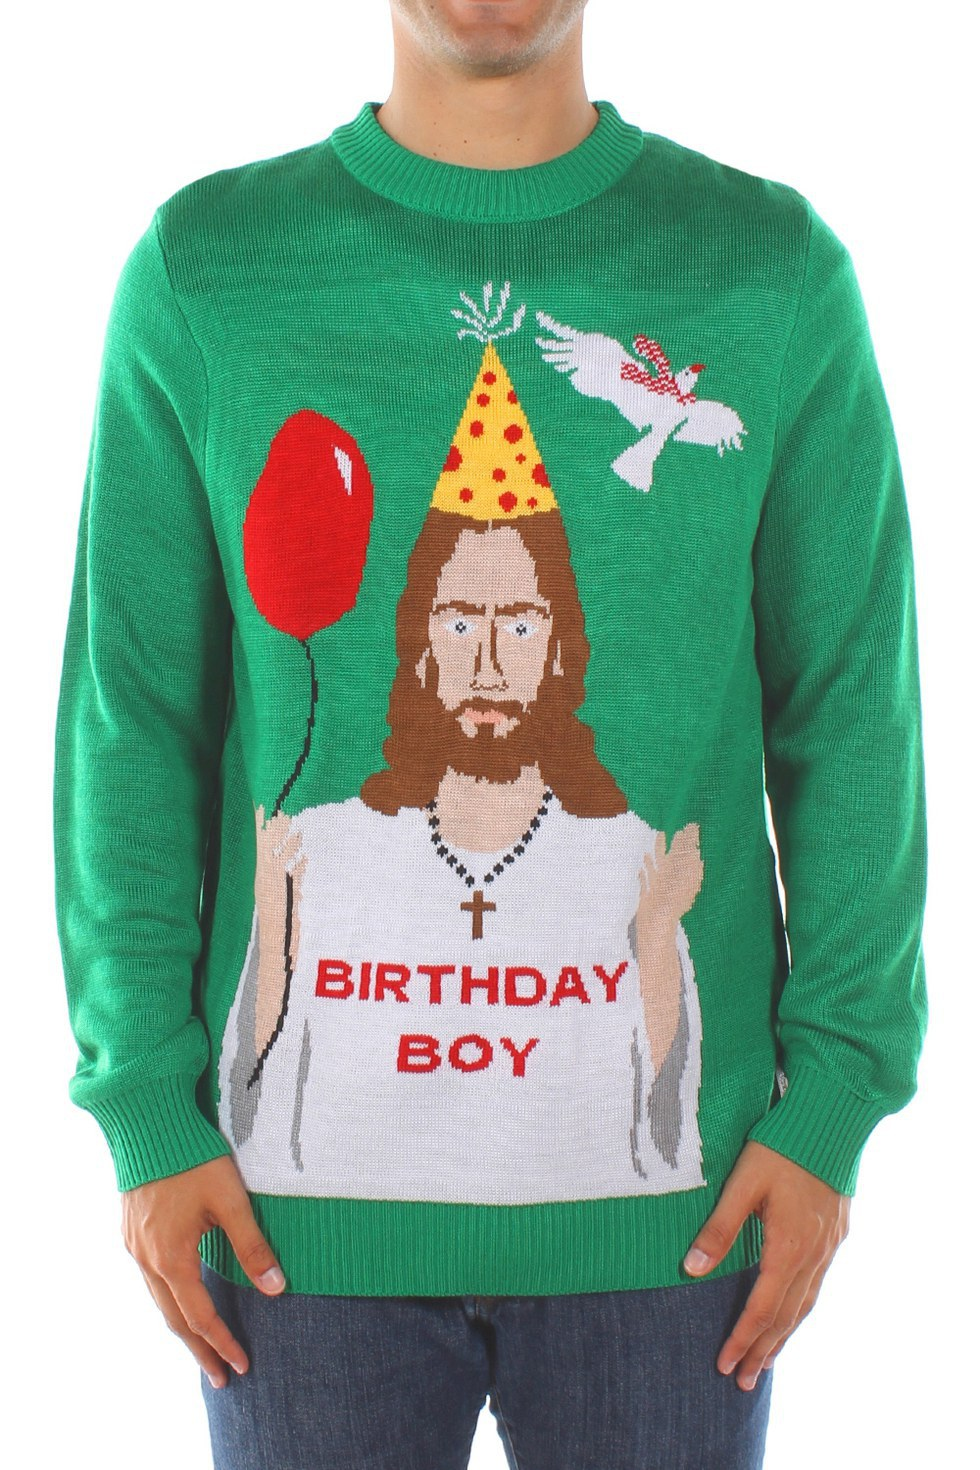 the best christmas sweaters of 2015 - Best Christmas Sweater